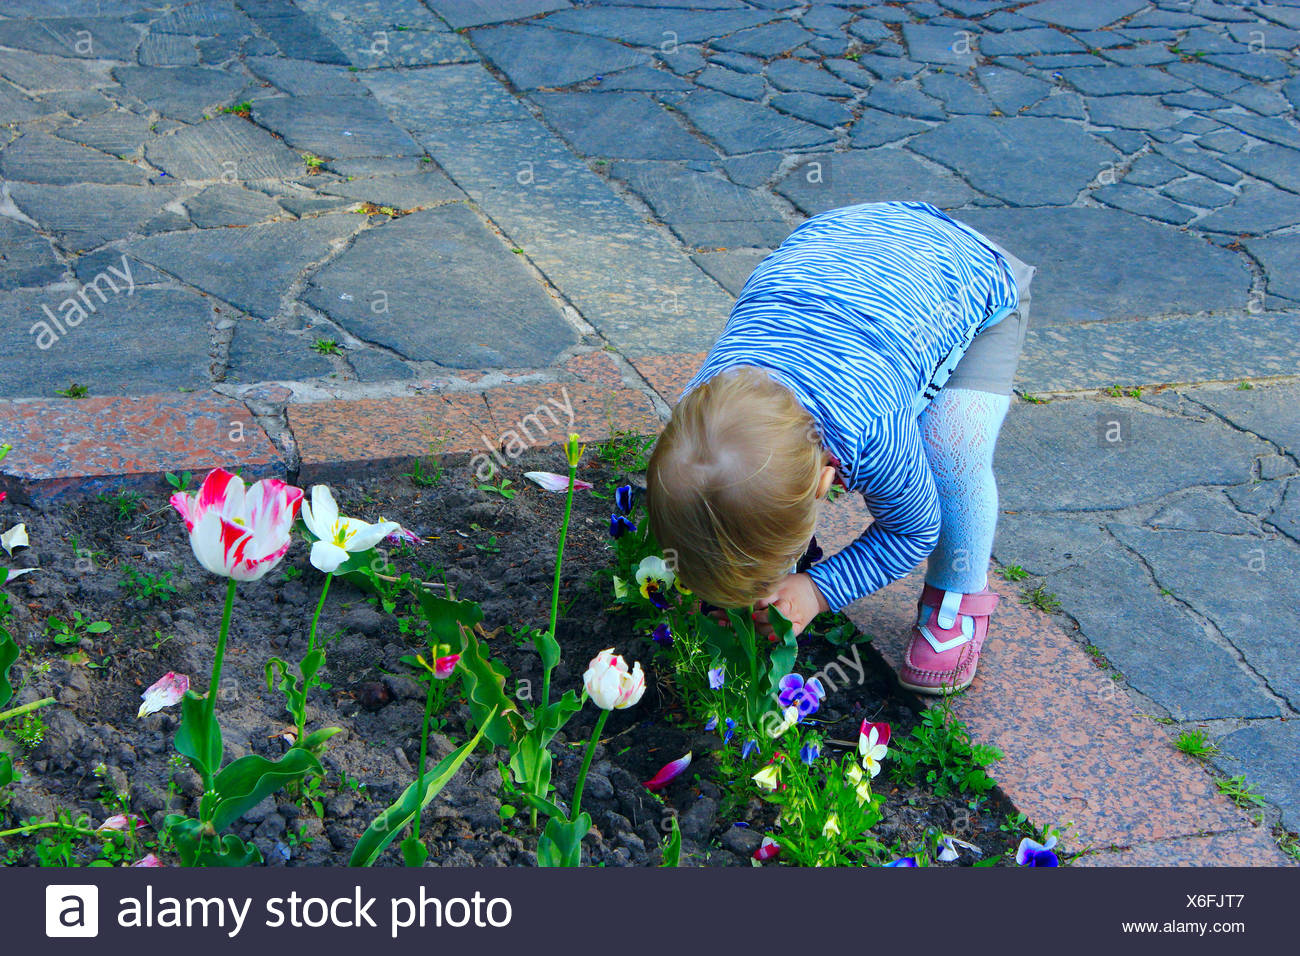 Curved Flower Bed Stock Photos & Curved Flower Bed Stock Images - Alamy